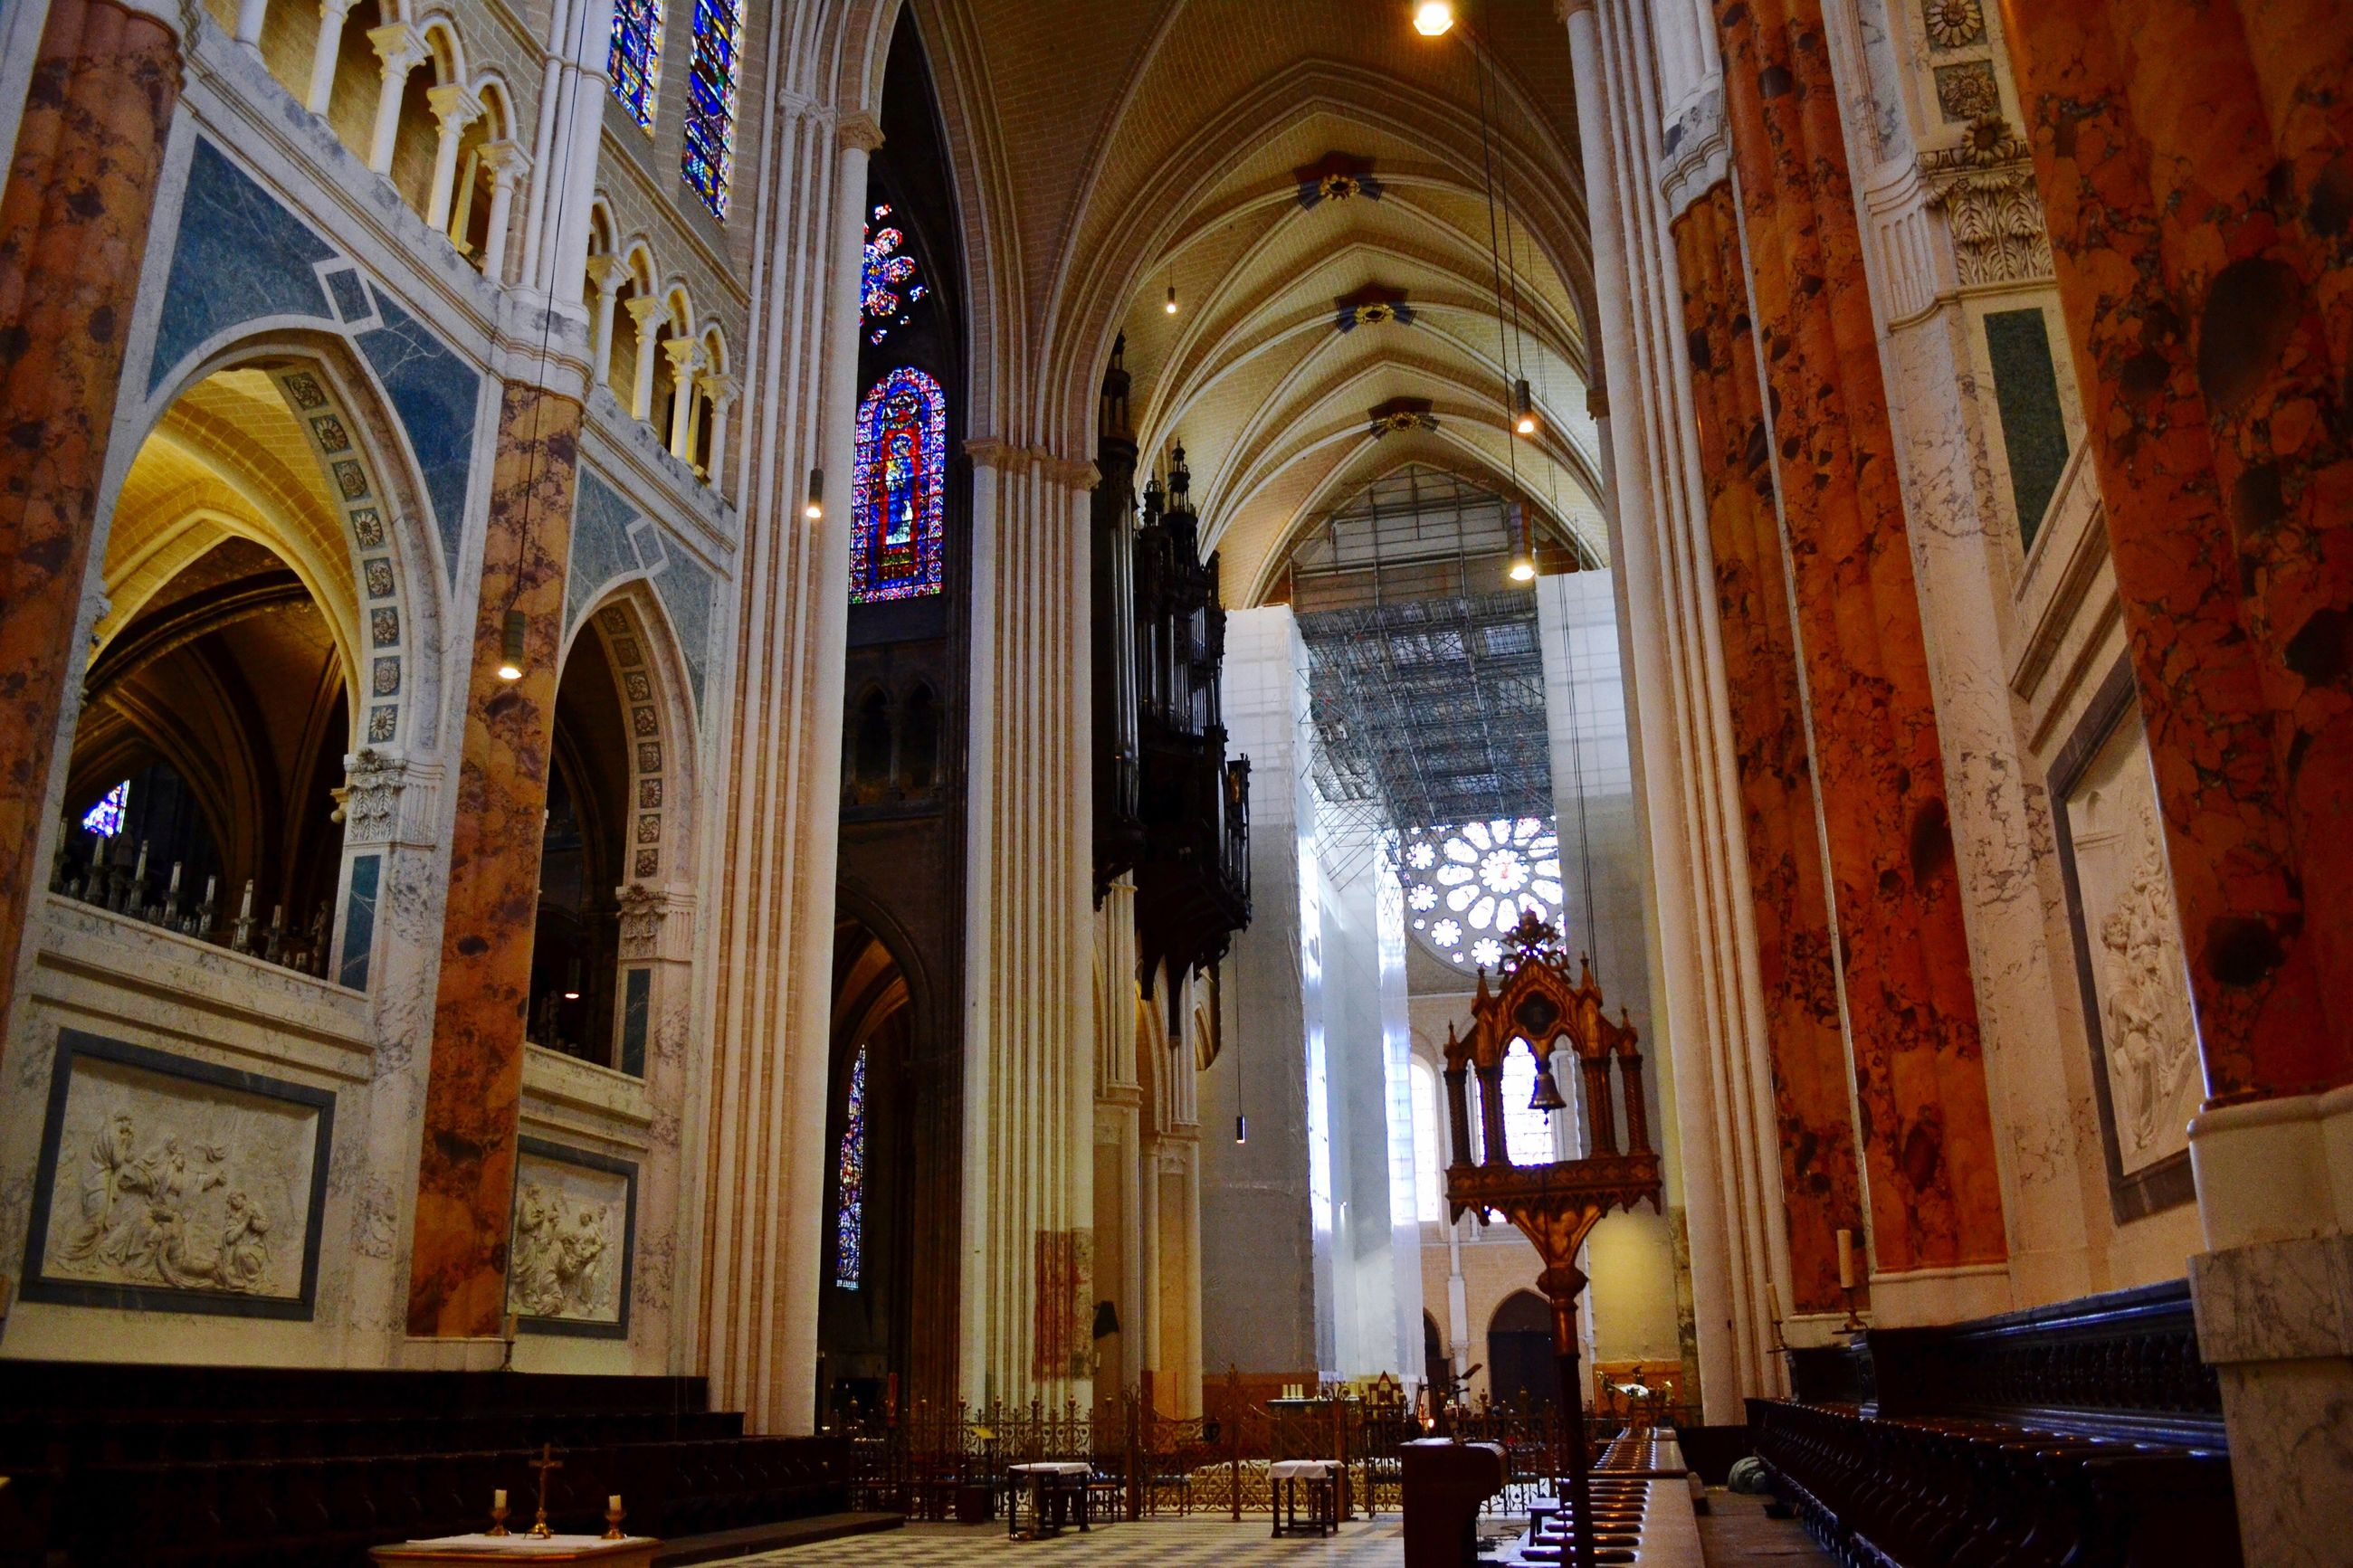 indoors, architecture, arch, built structure, place of worship, religion, church, spirituality, cathedral, famous place, architectural column, interior, history, travel destinations, tourism, travel, building exterior, incidental people